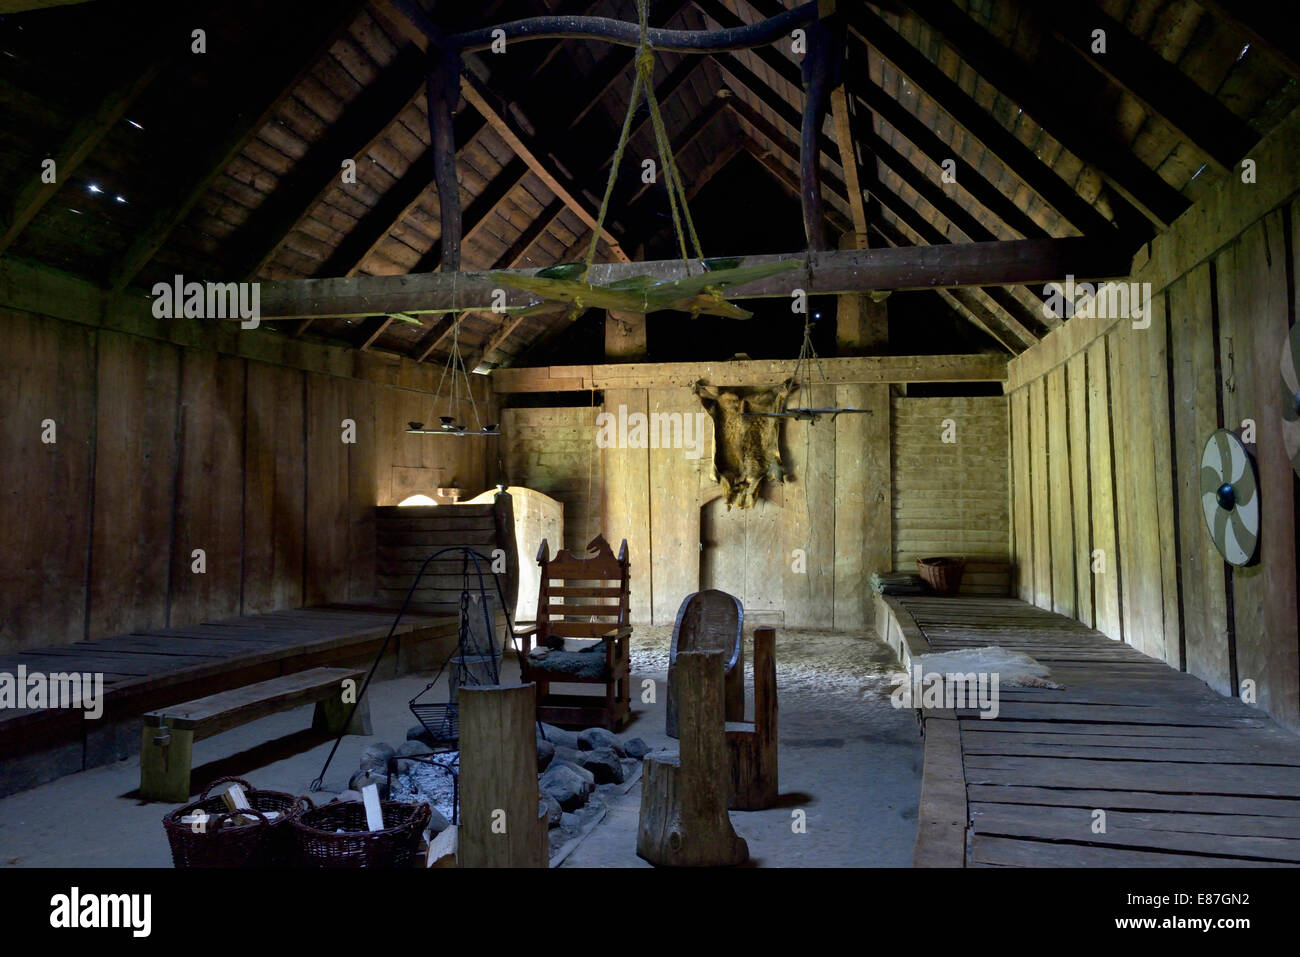 Inside the reconstructed longhouse, Trelleborg, Slagelse, Denmark 140816 62324 Stock Photo